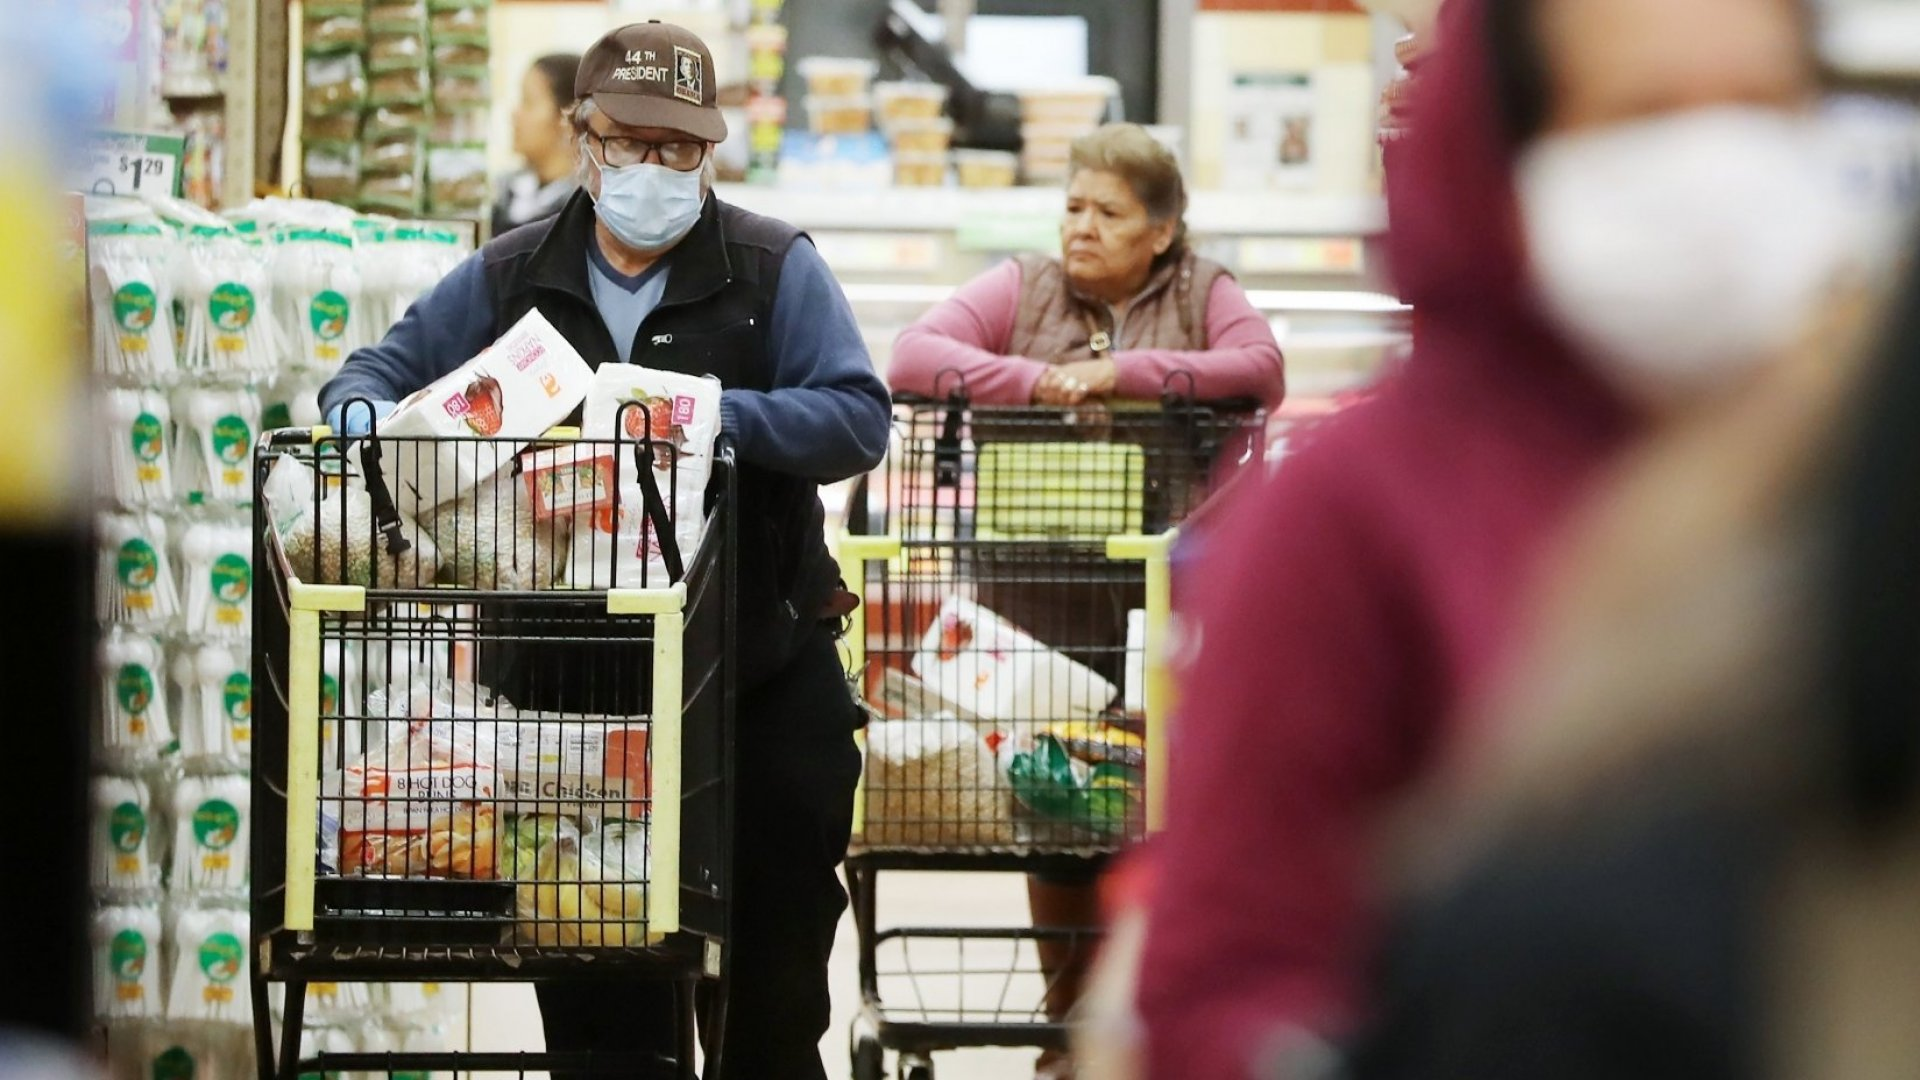 The Startup That's Keeping Supermarkets Staffed During the Pandemic